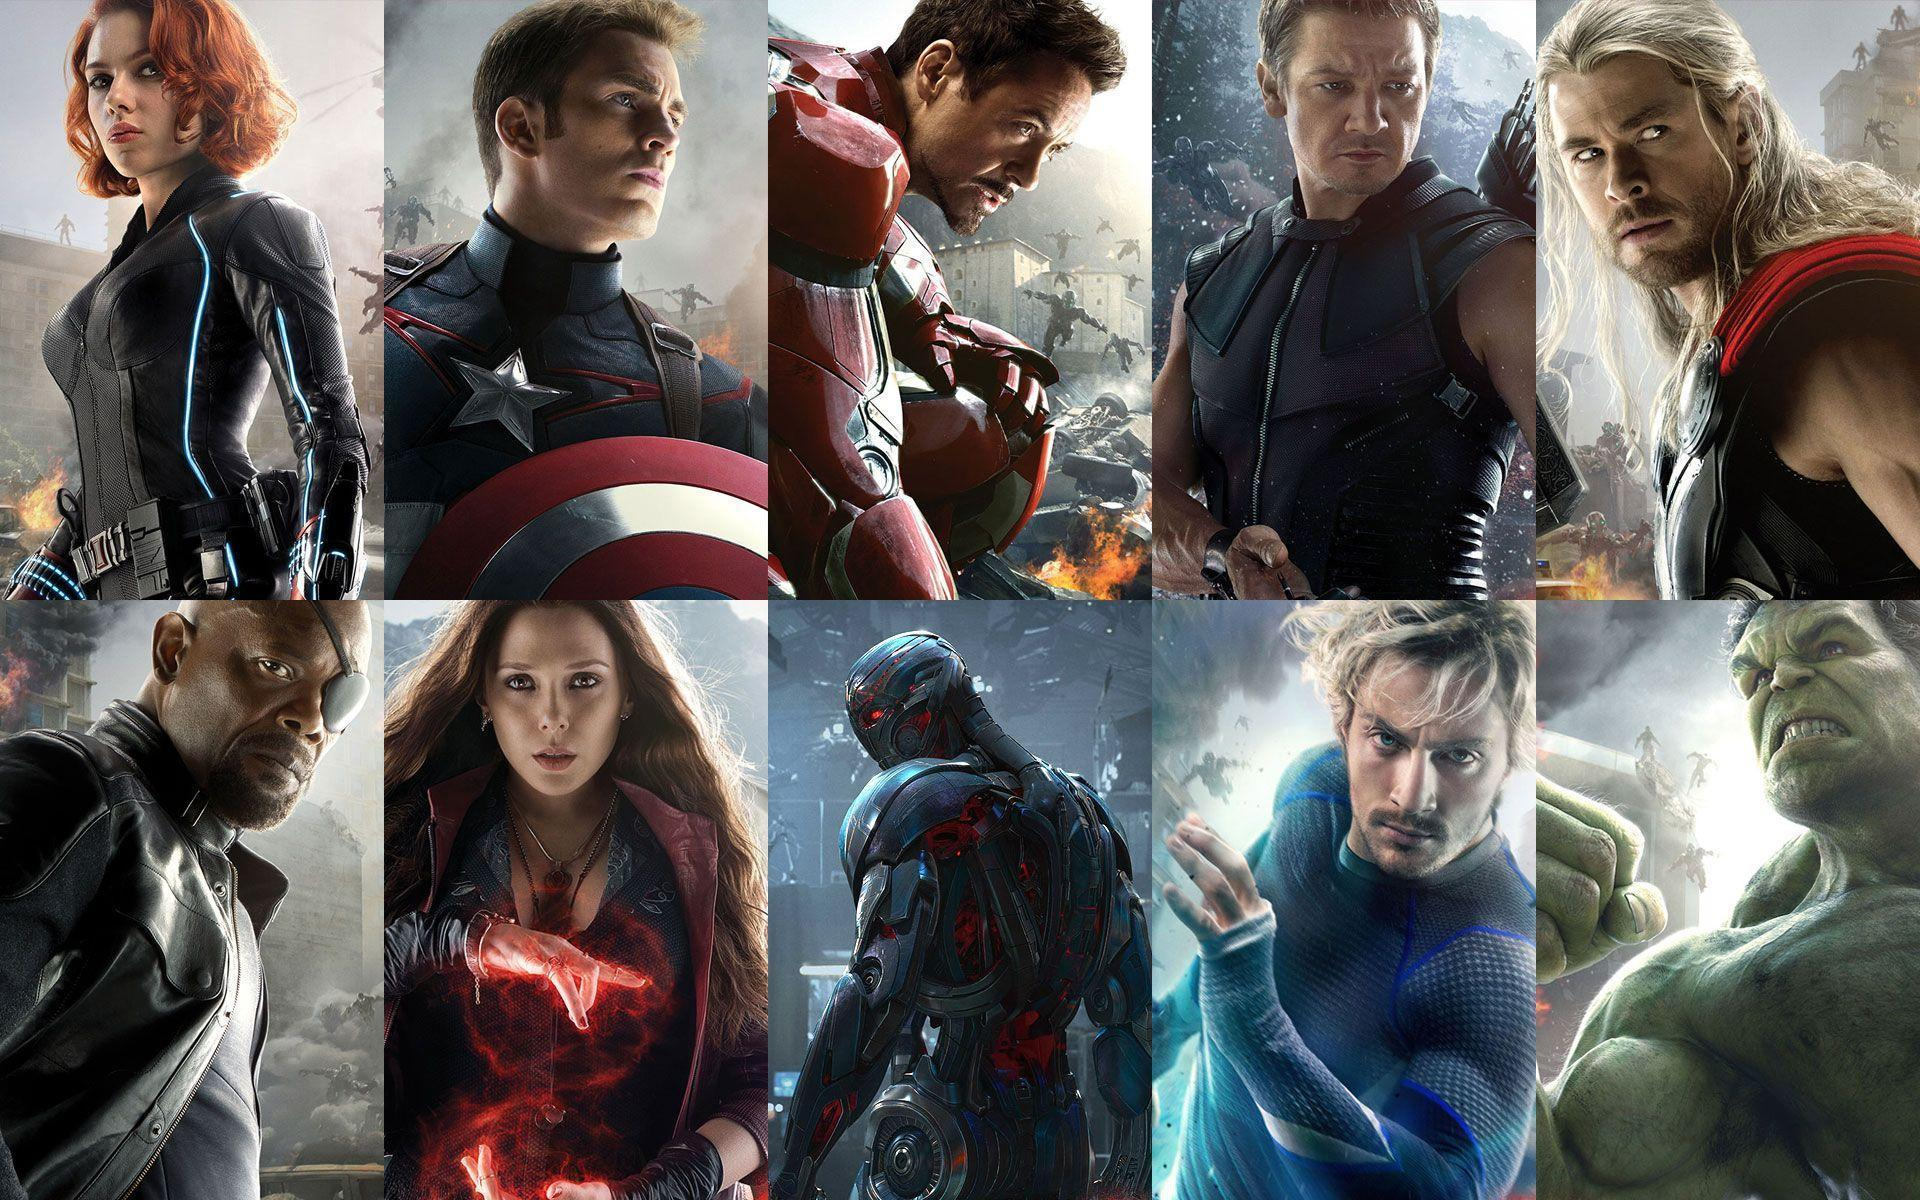 Avengers 2: Age of Ultron 2015 Desktop & iPhone Wallpapers HD